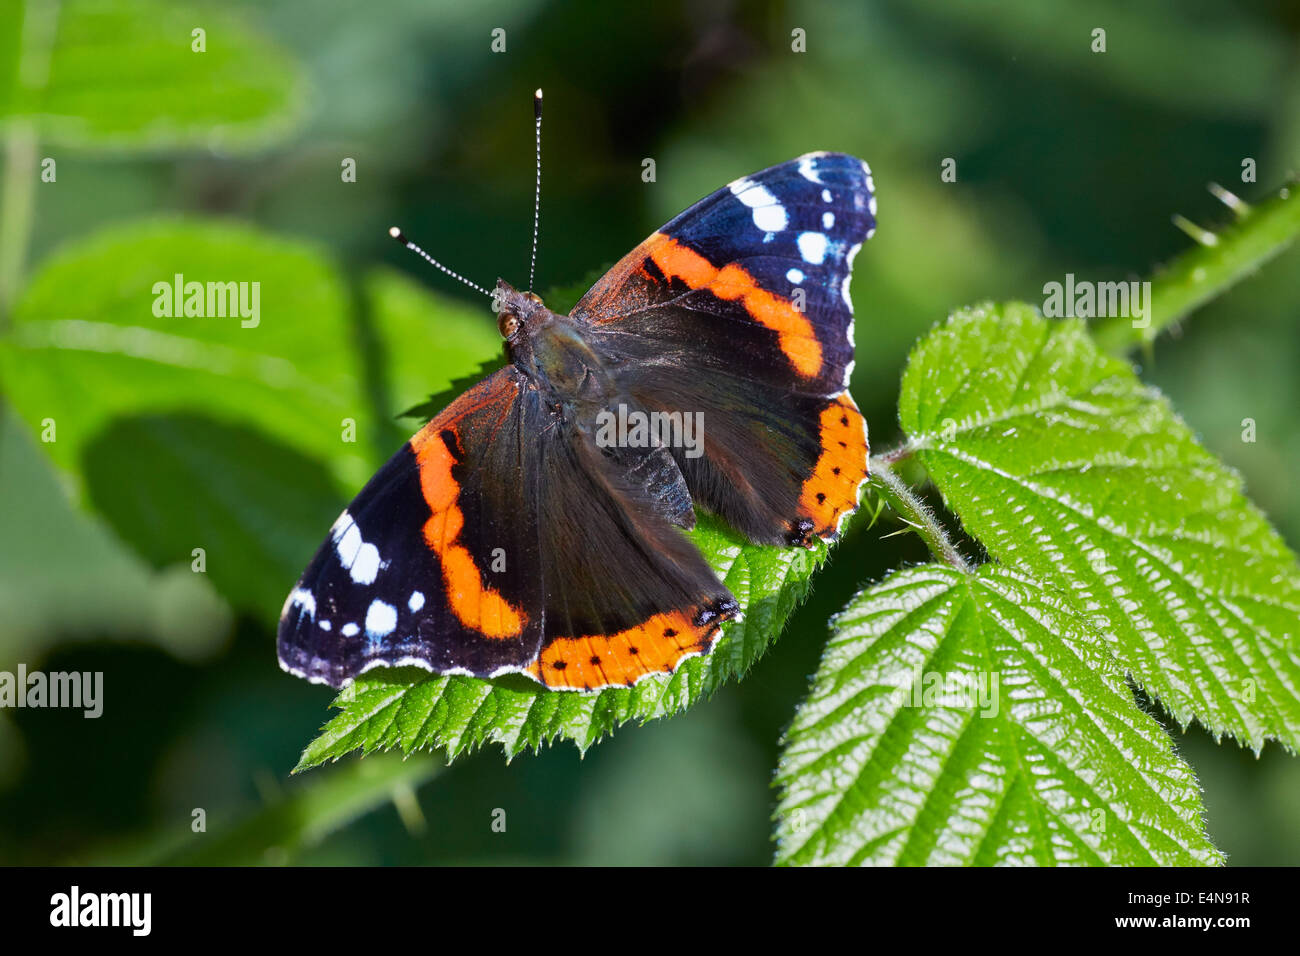 Red Admiral butterfly on bramble.  Bookham Common, Surrey, England. - Stock Image